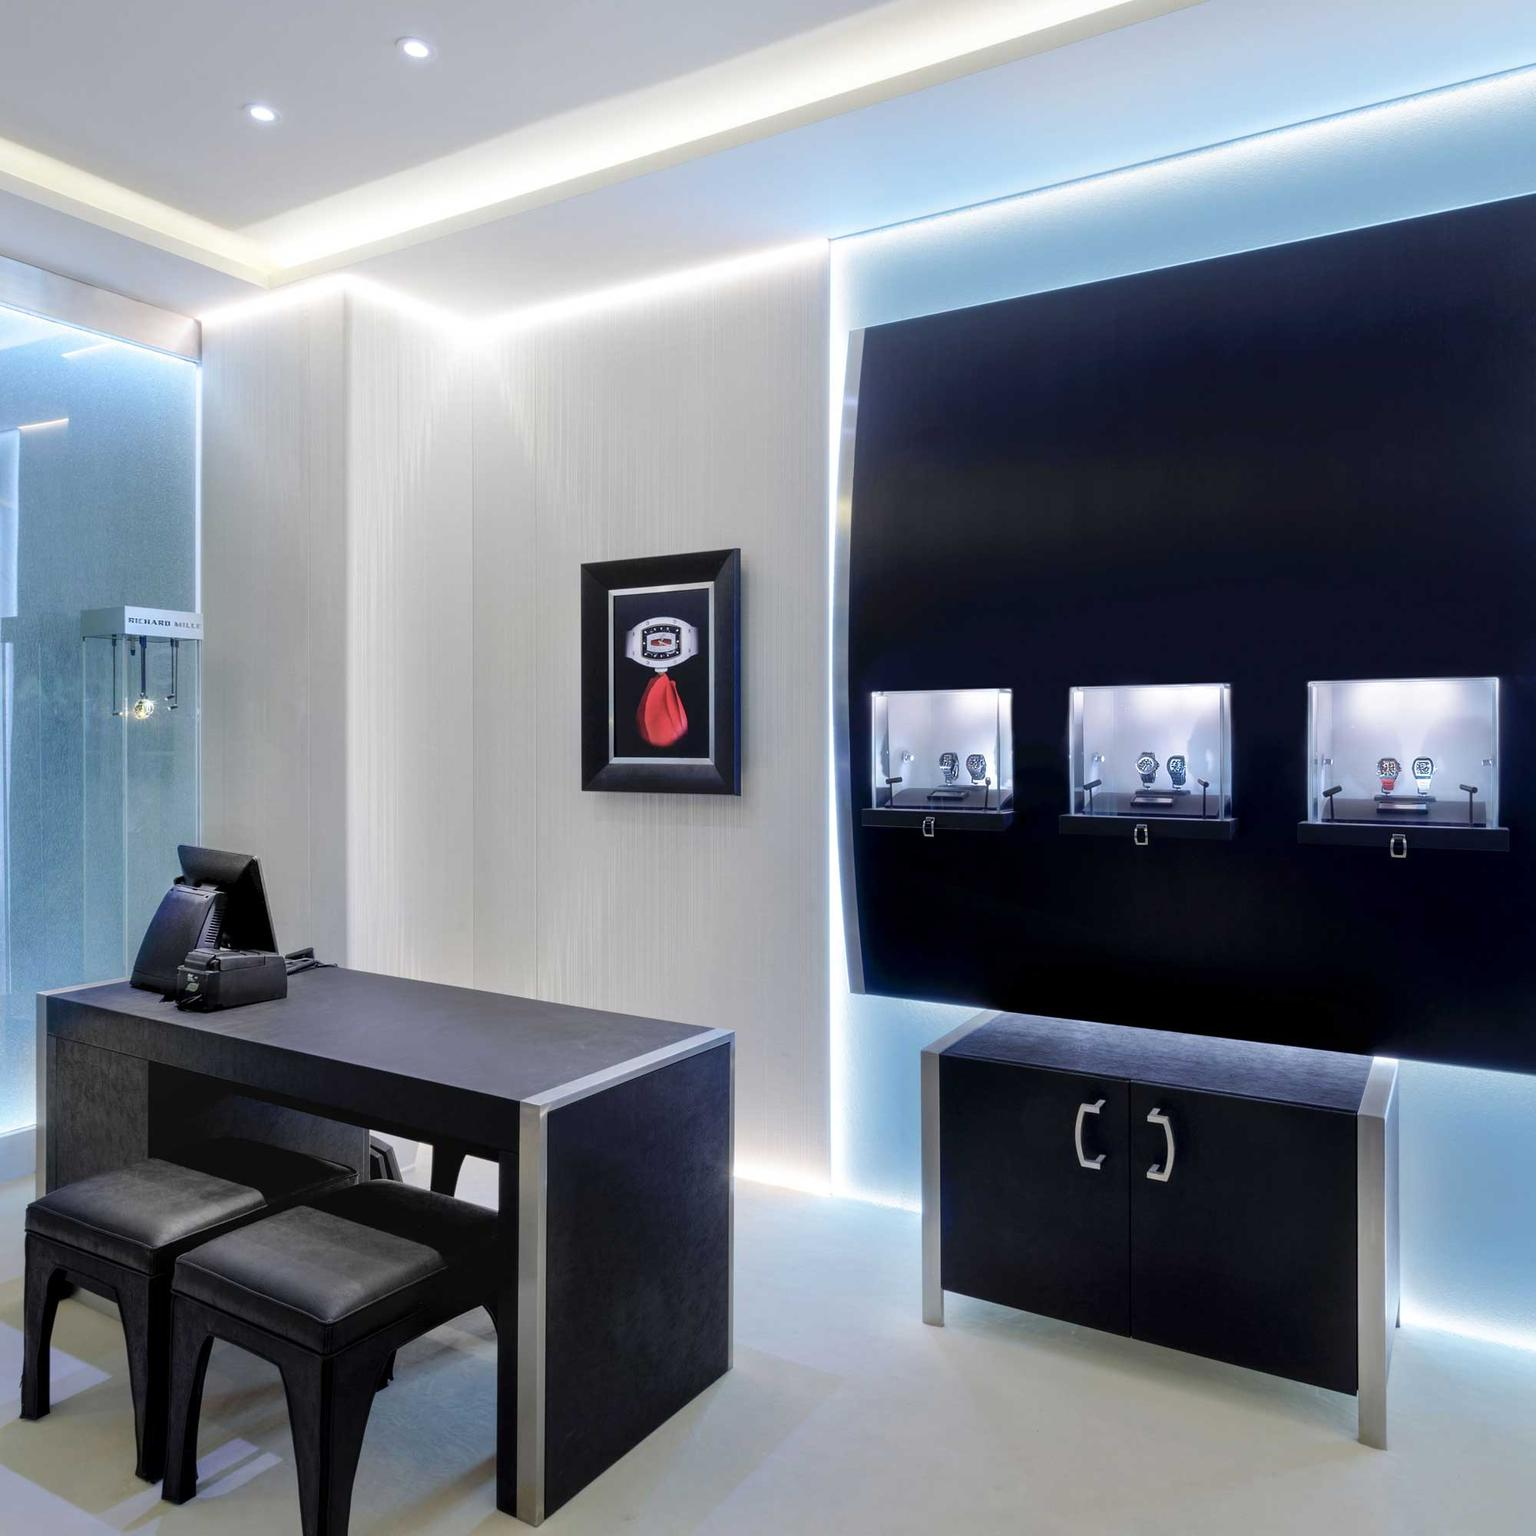 Richard Mille boutique interior at Harrods